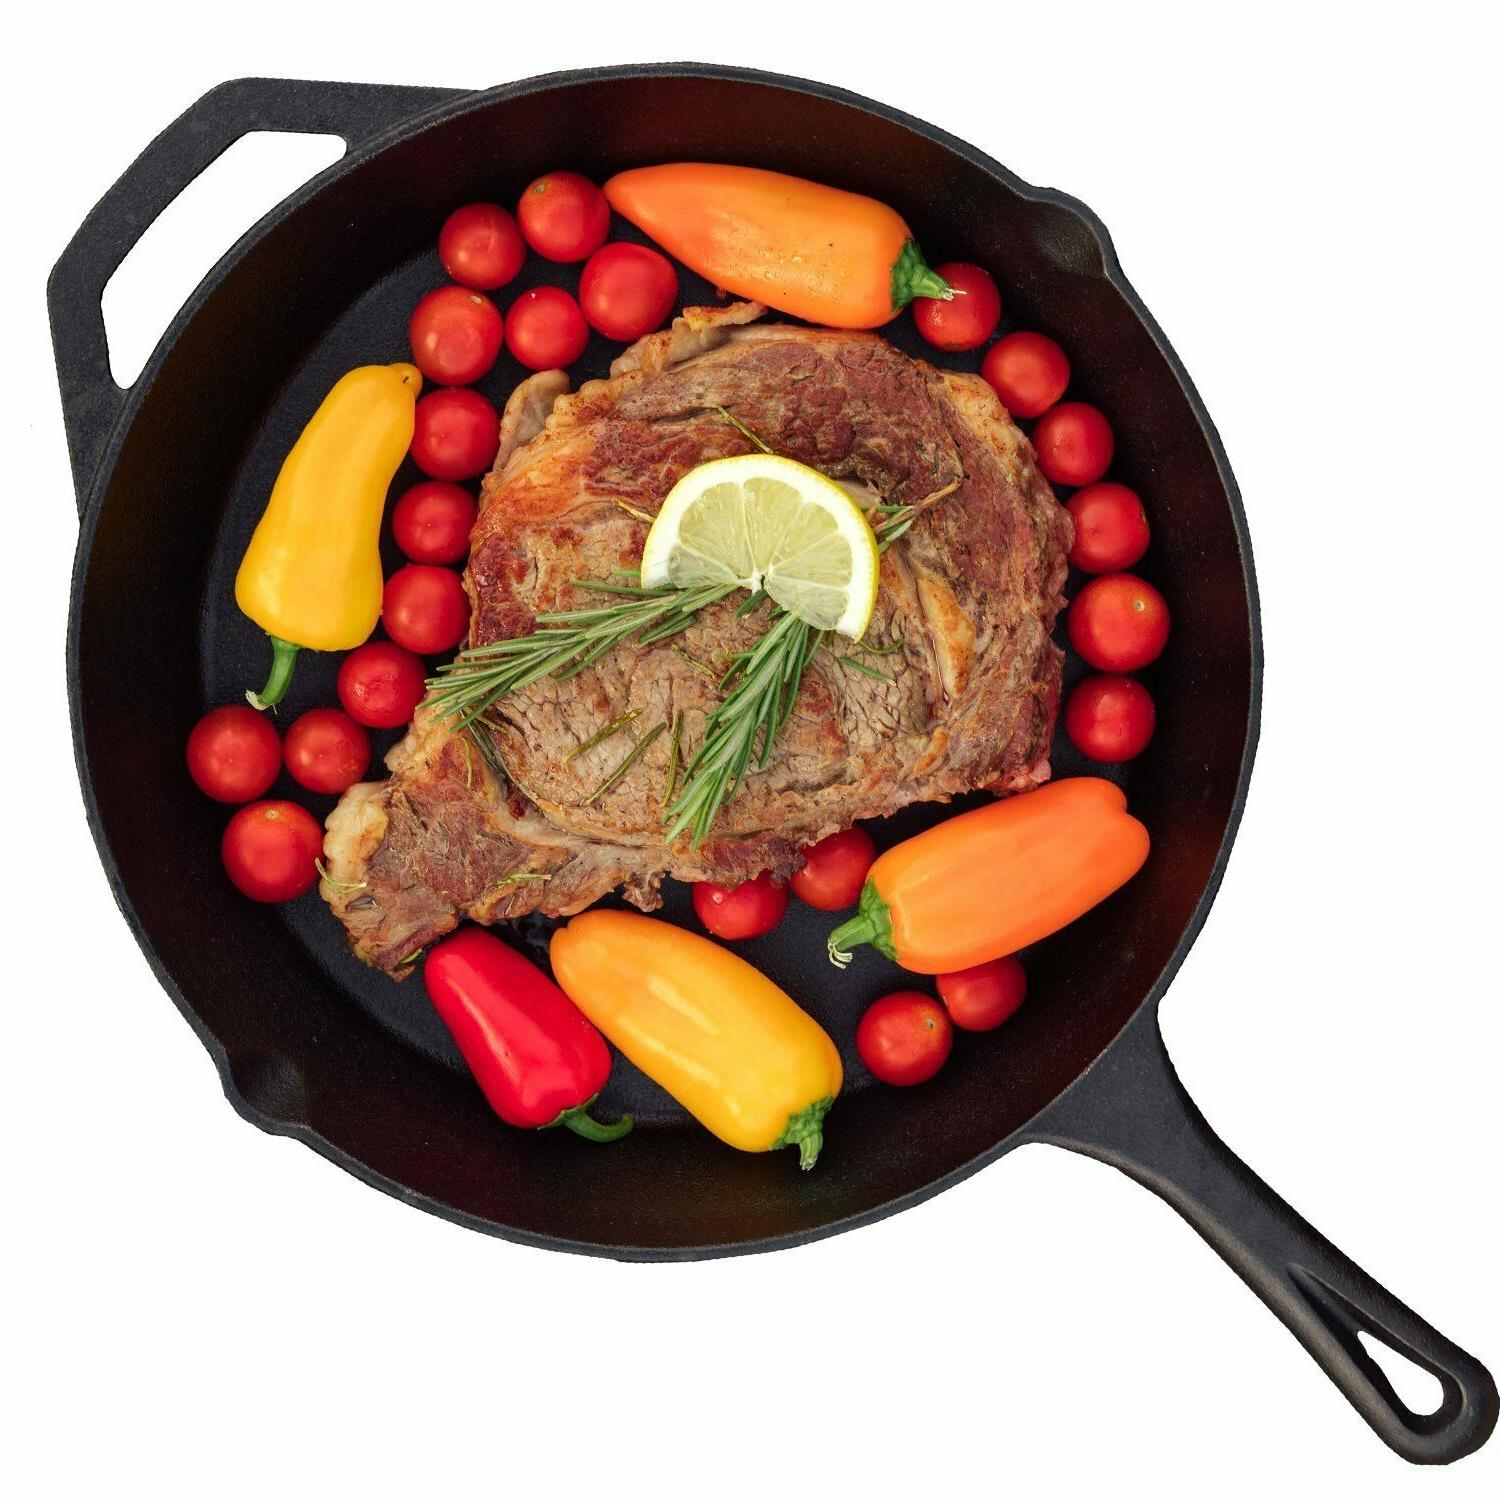 Cast iron skillet Inch Cookware Pot Oven Cooking Fry Pan